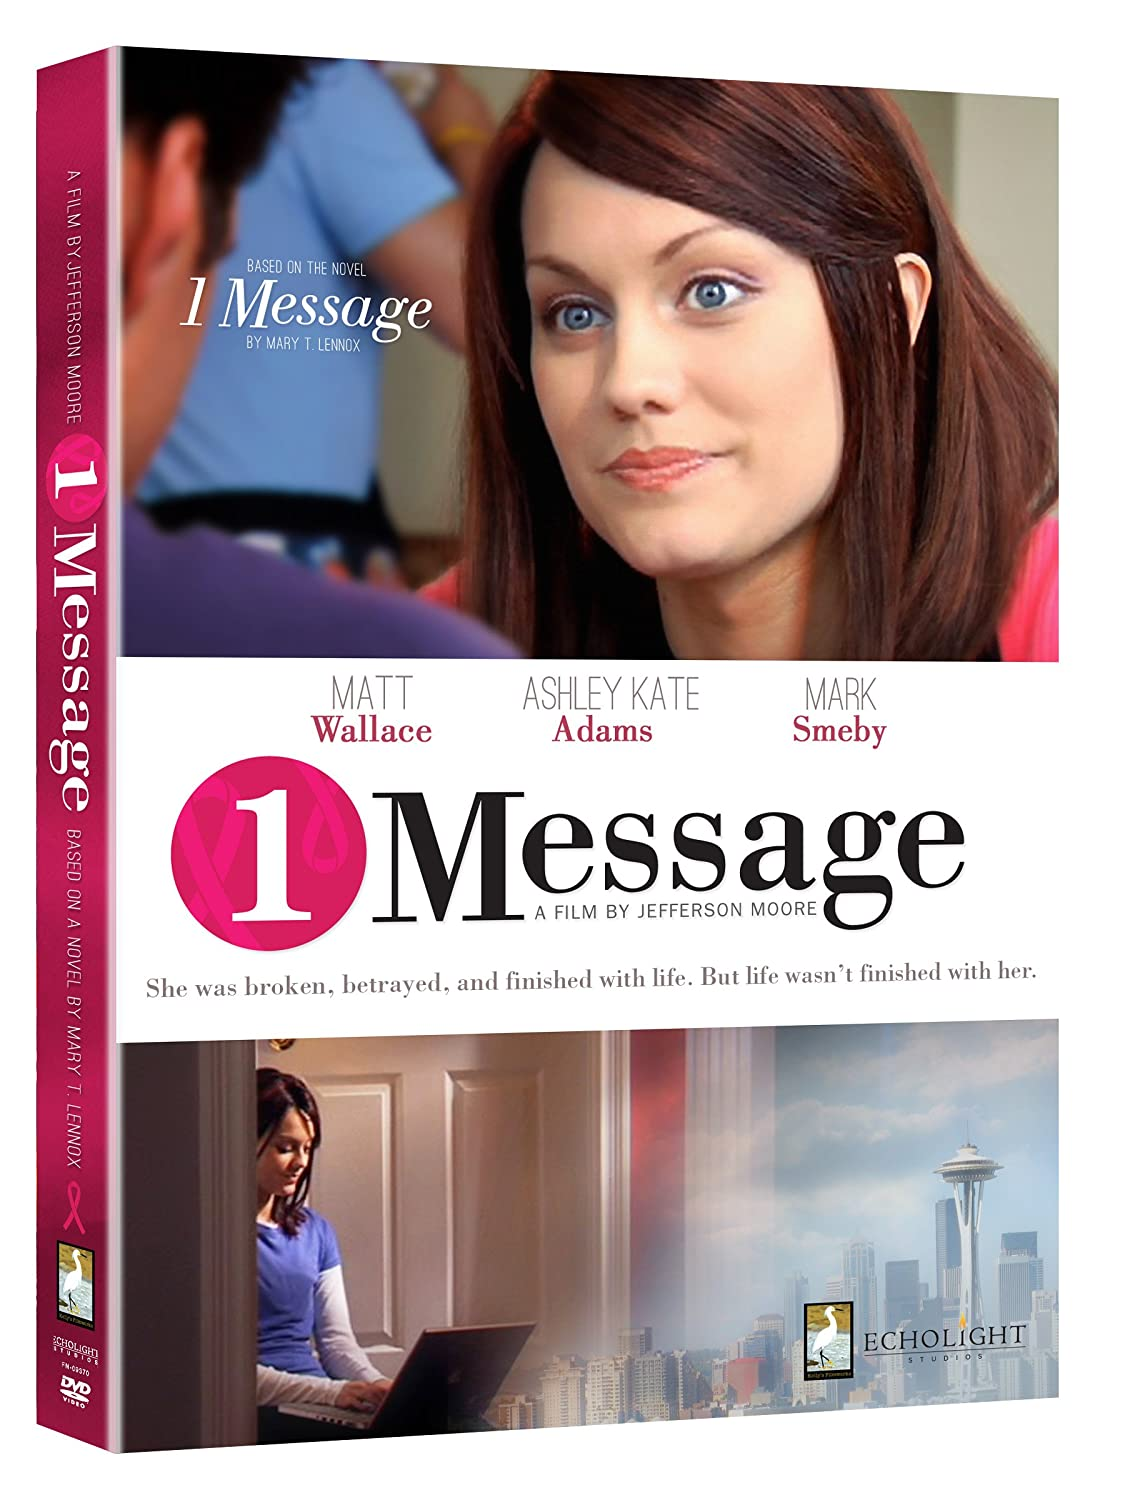 1 Message - DVD Image